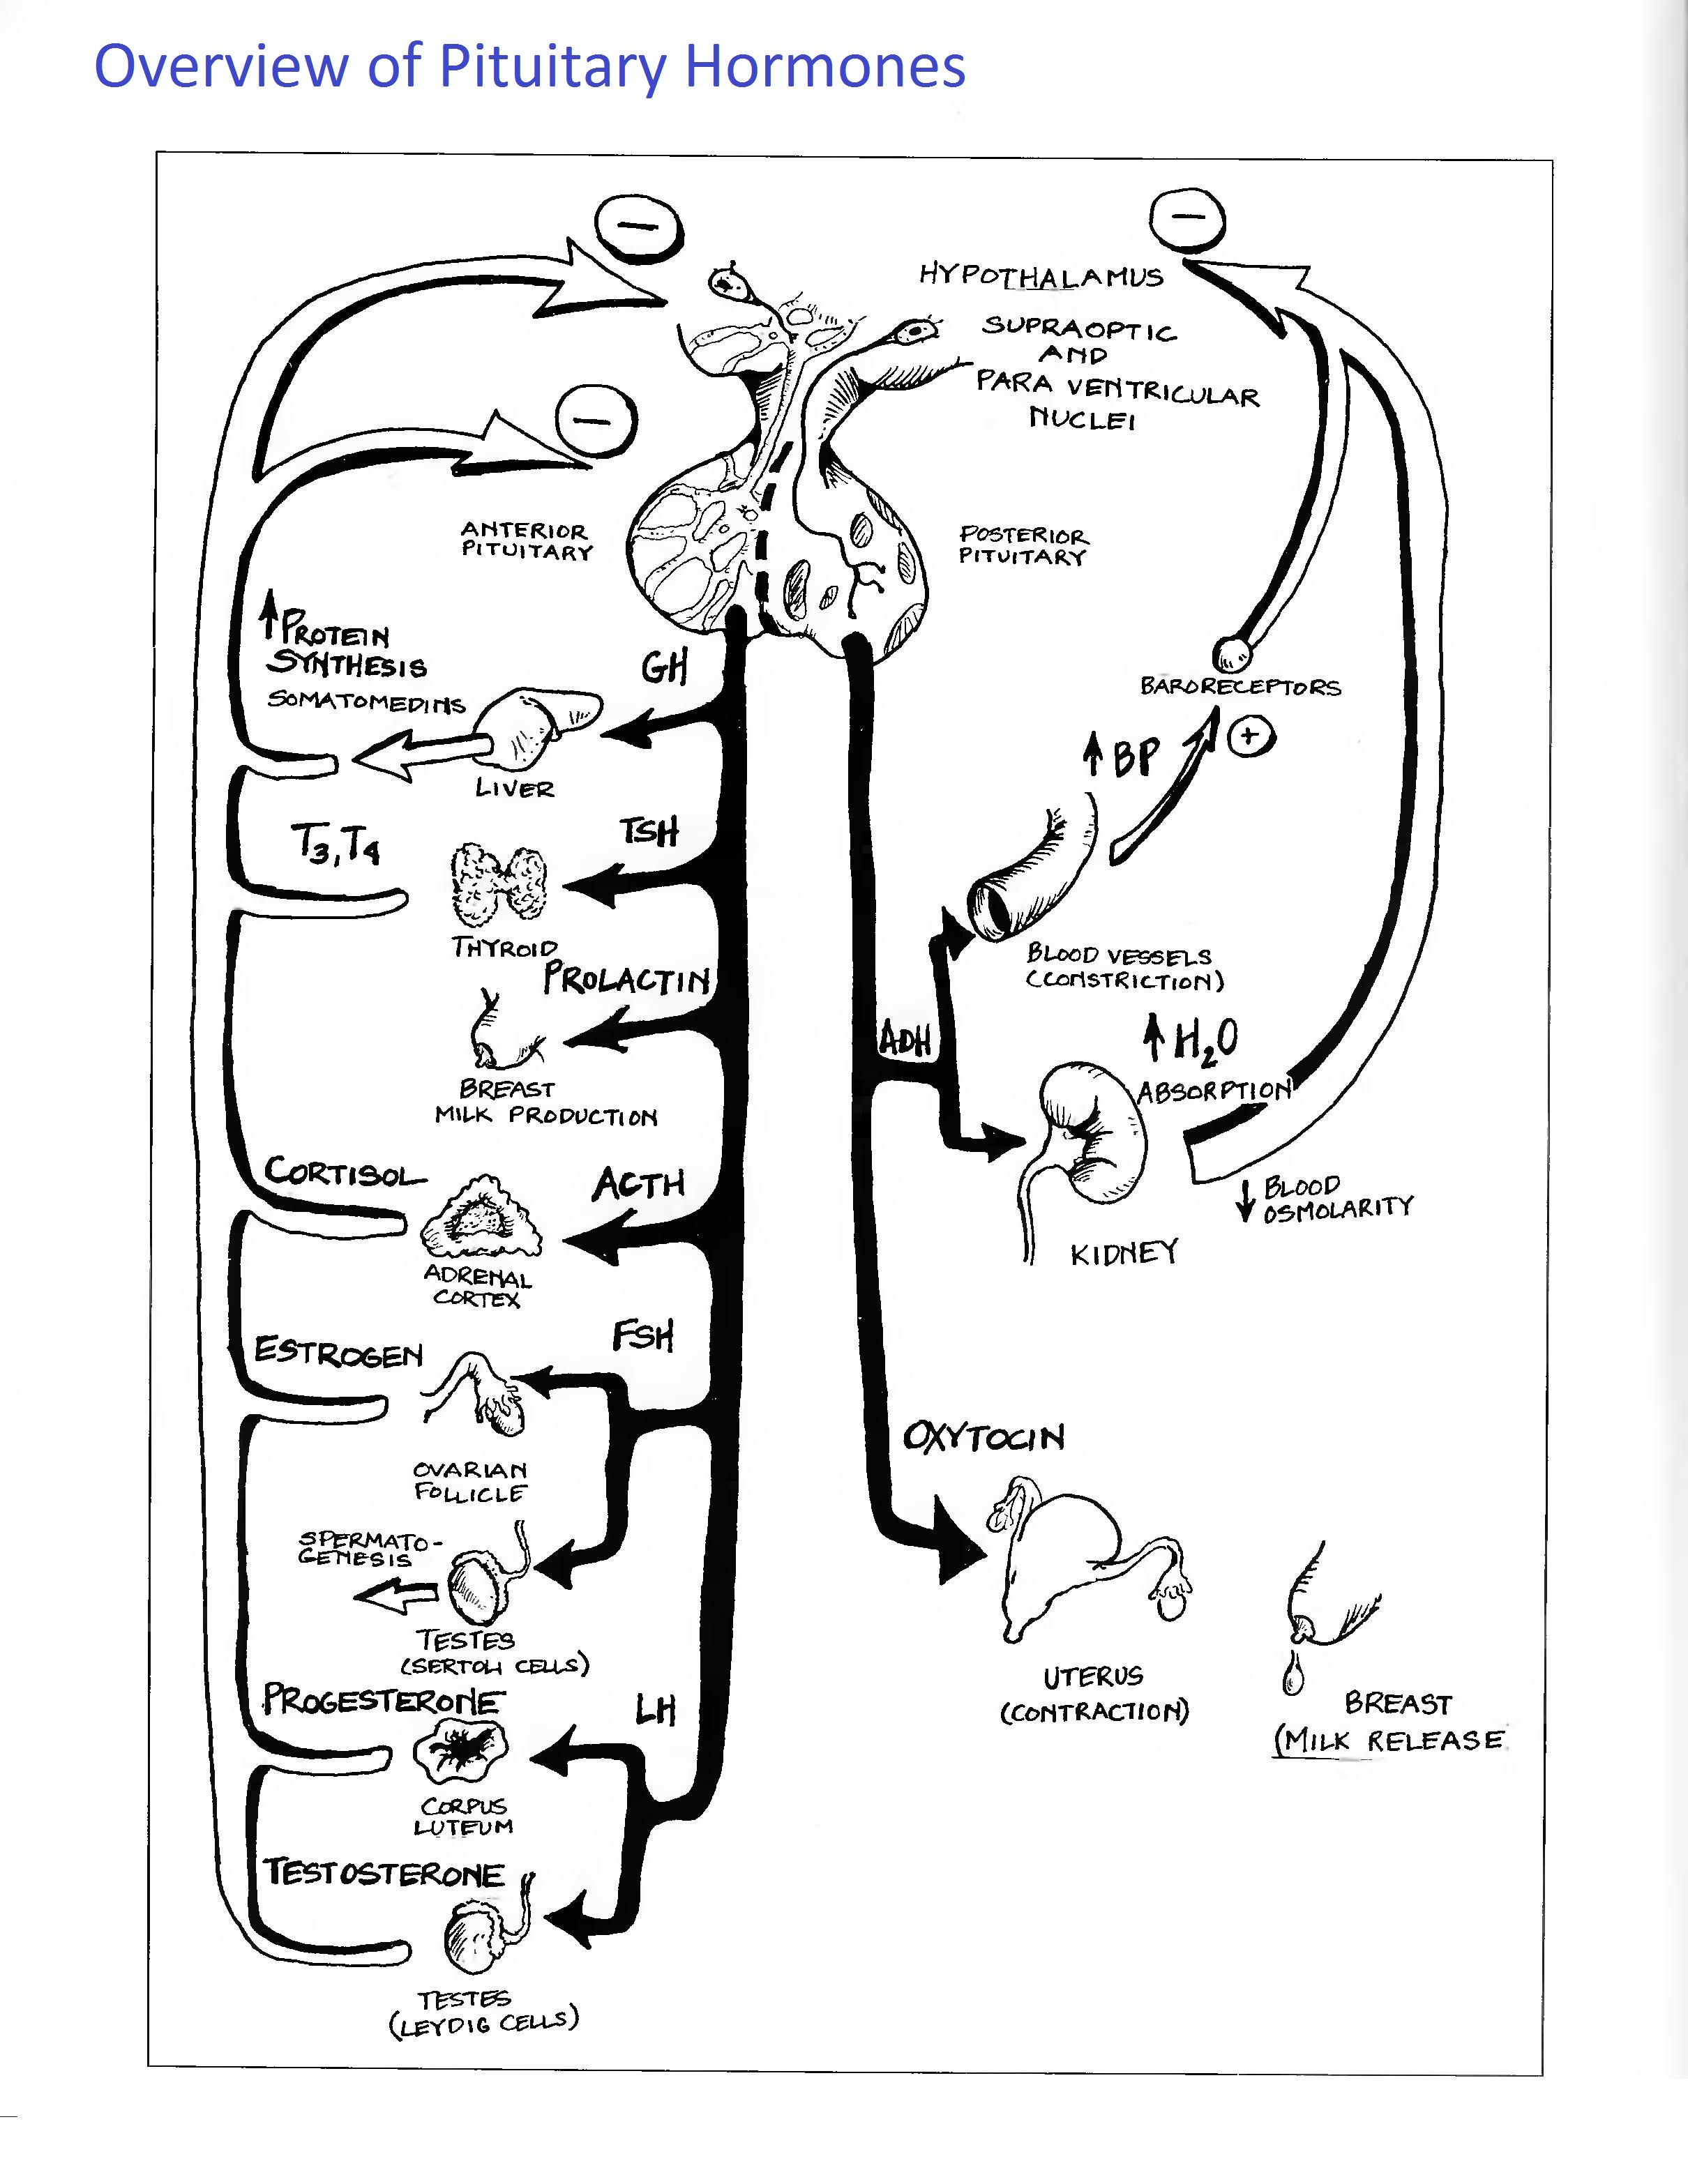 pin by samantha seager on anatomy physiology pinterest Human Female Reproductive System Diagram piturary hormones 2 420 3 132 pixels endocrine system study notes health